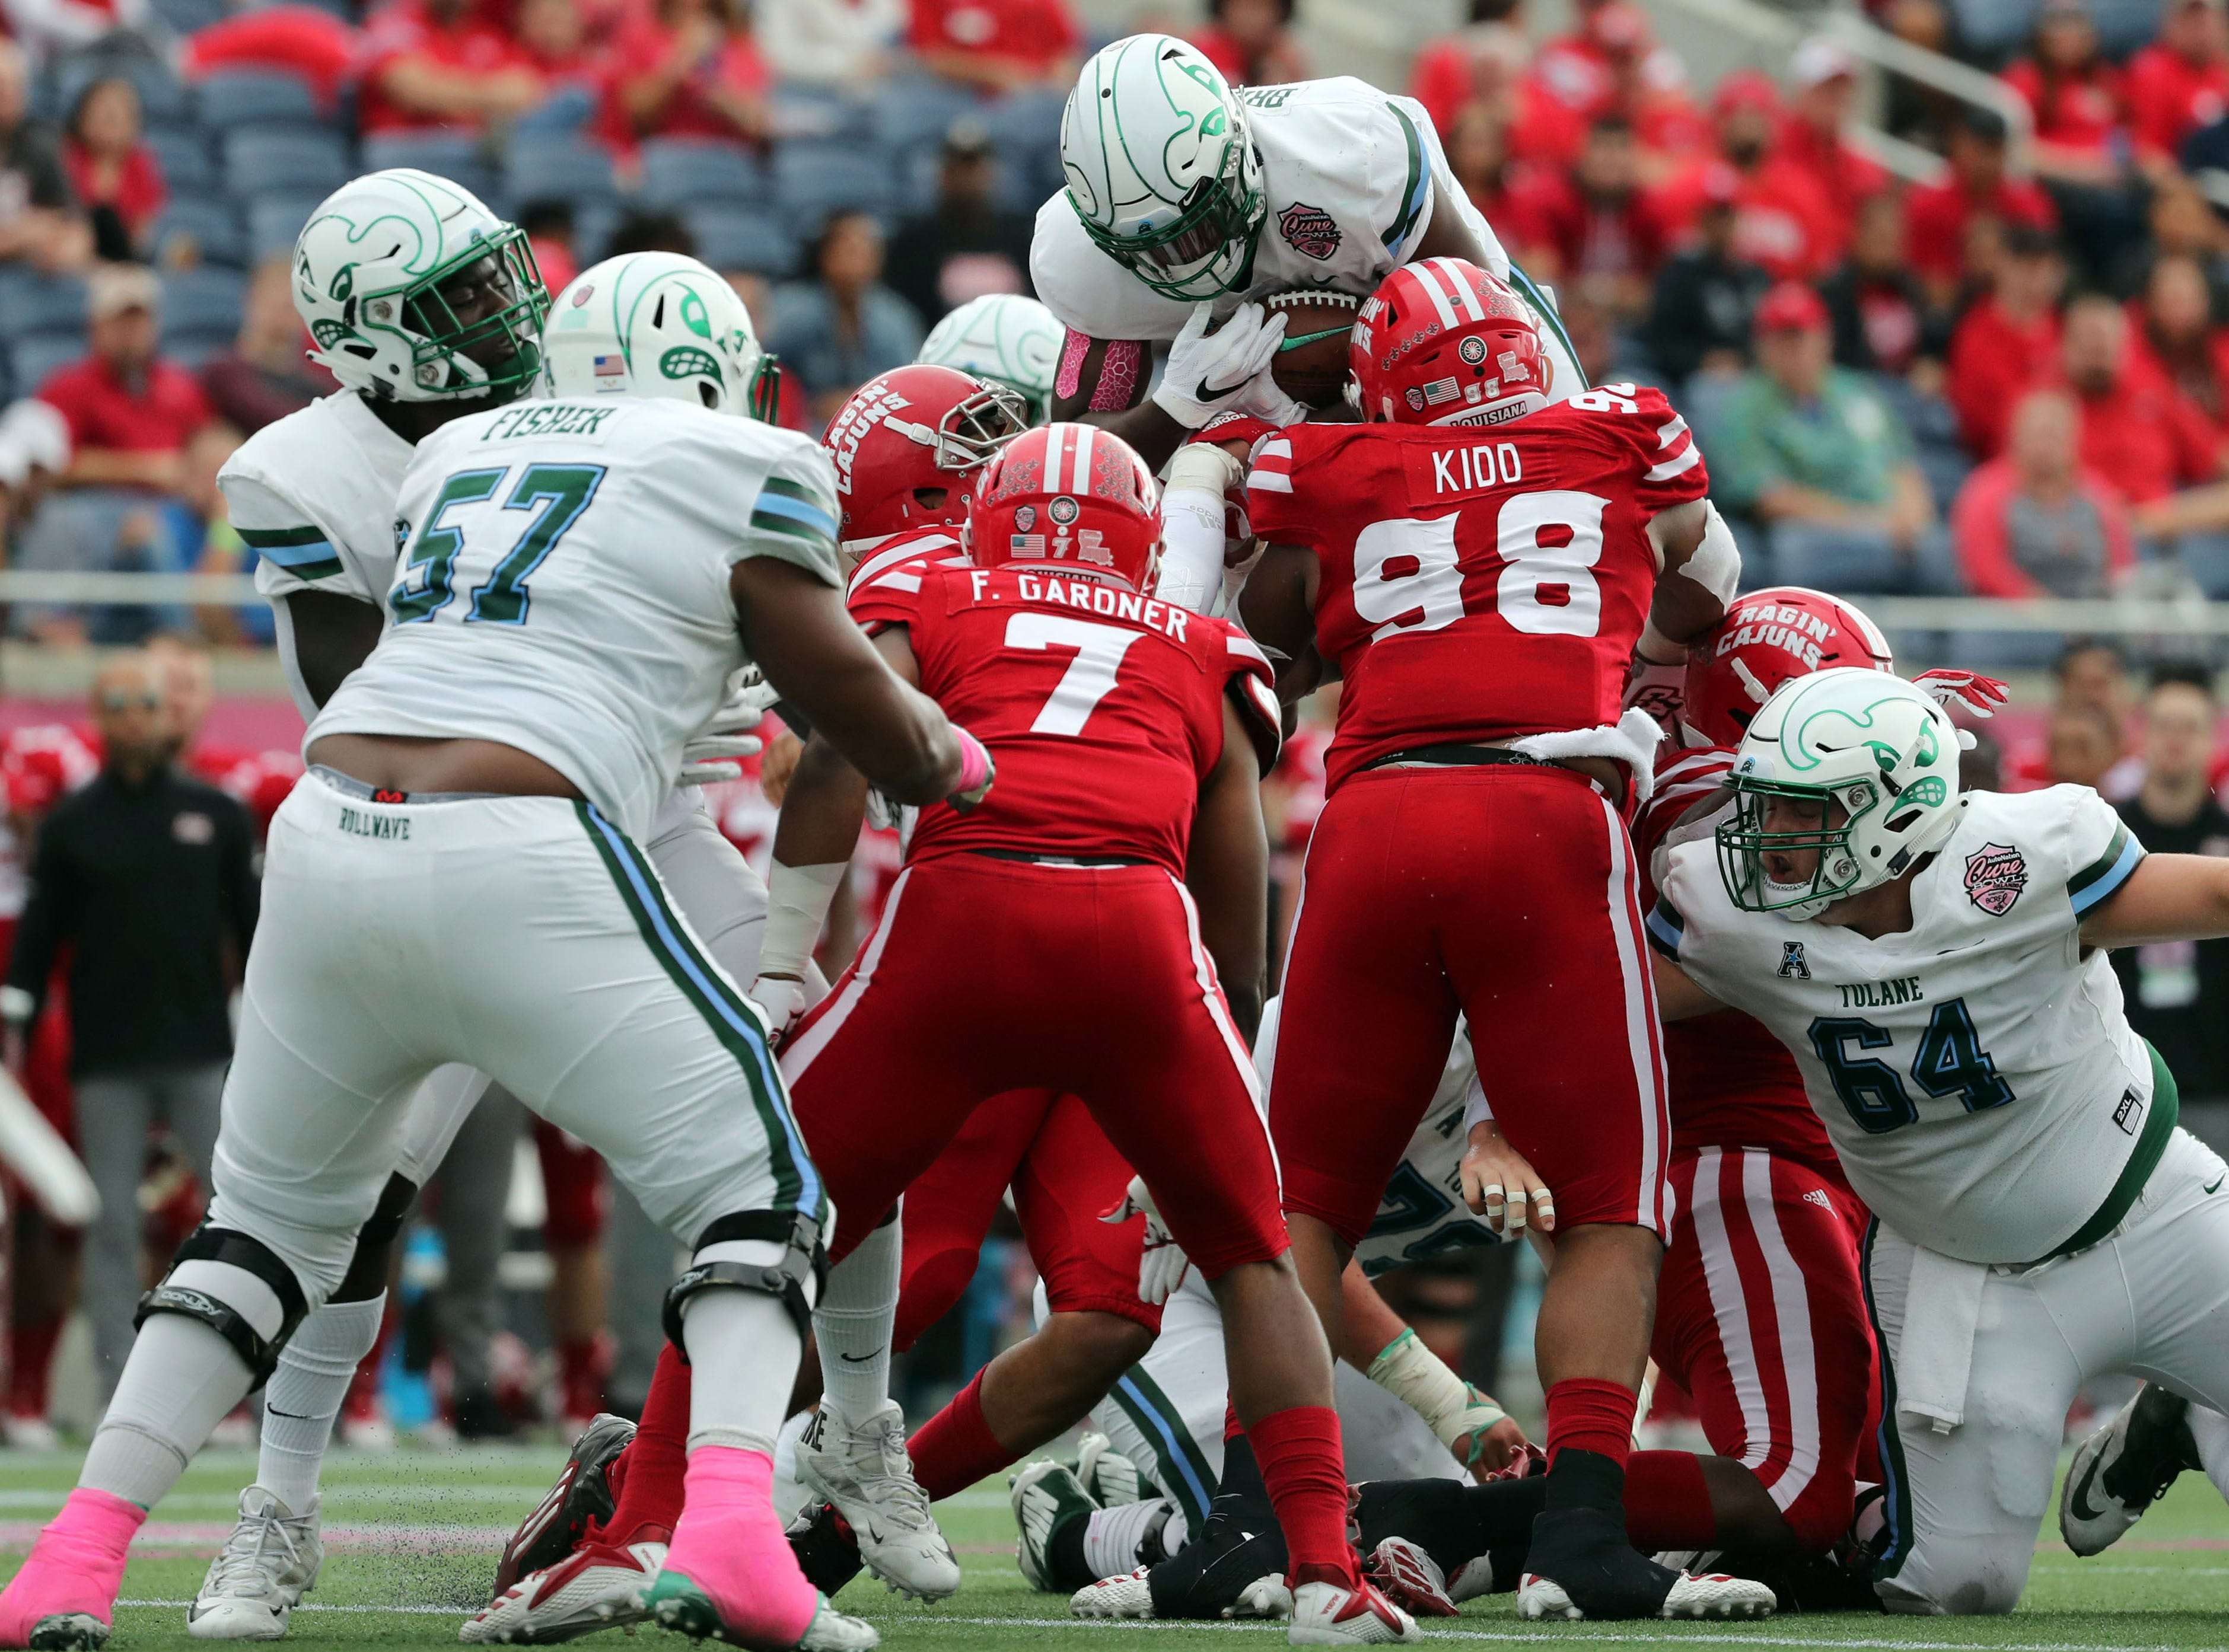 Tulane Green Wave running back Darius Bradwell (10) jumps over Louisiana-Lafayette Ragin' Cajuns defensive tackle LaDarrius Kidd (98) in the Cure Bowl.